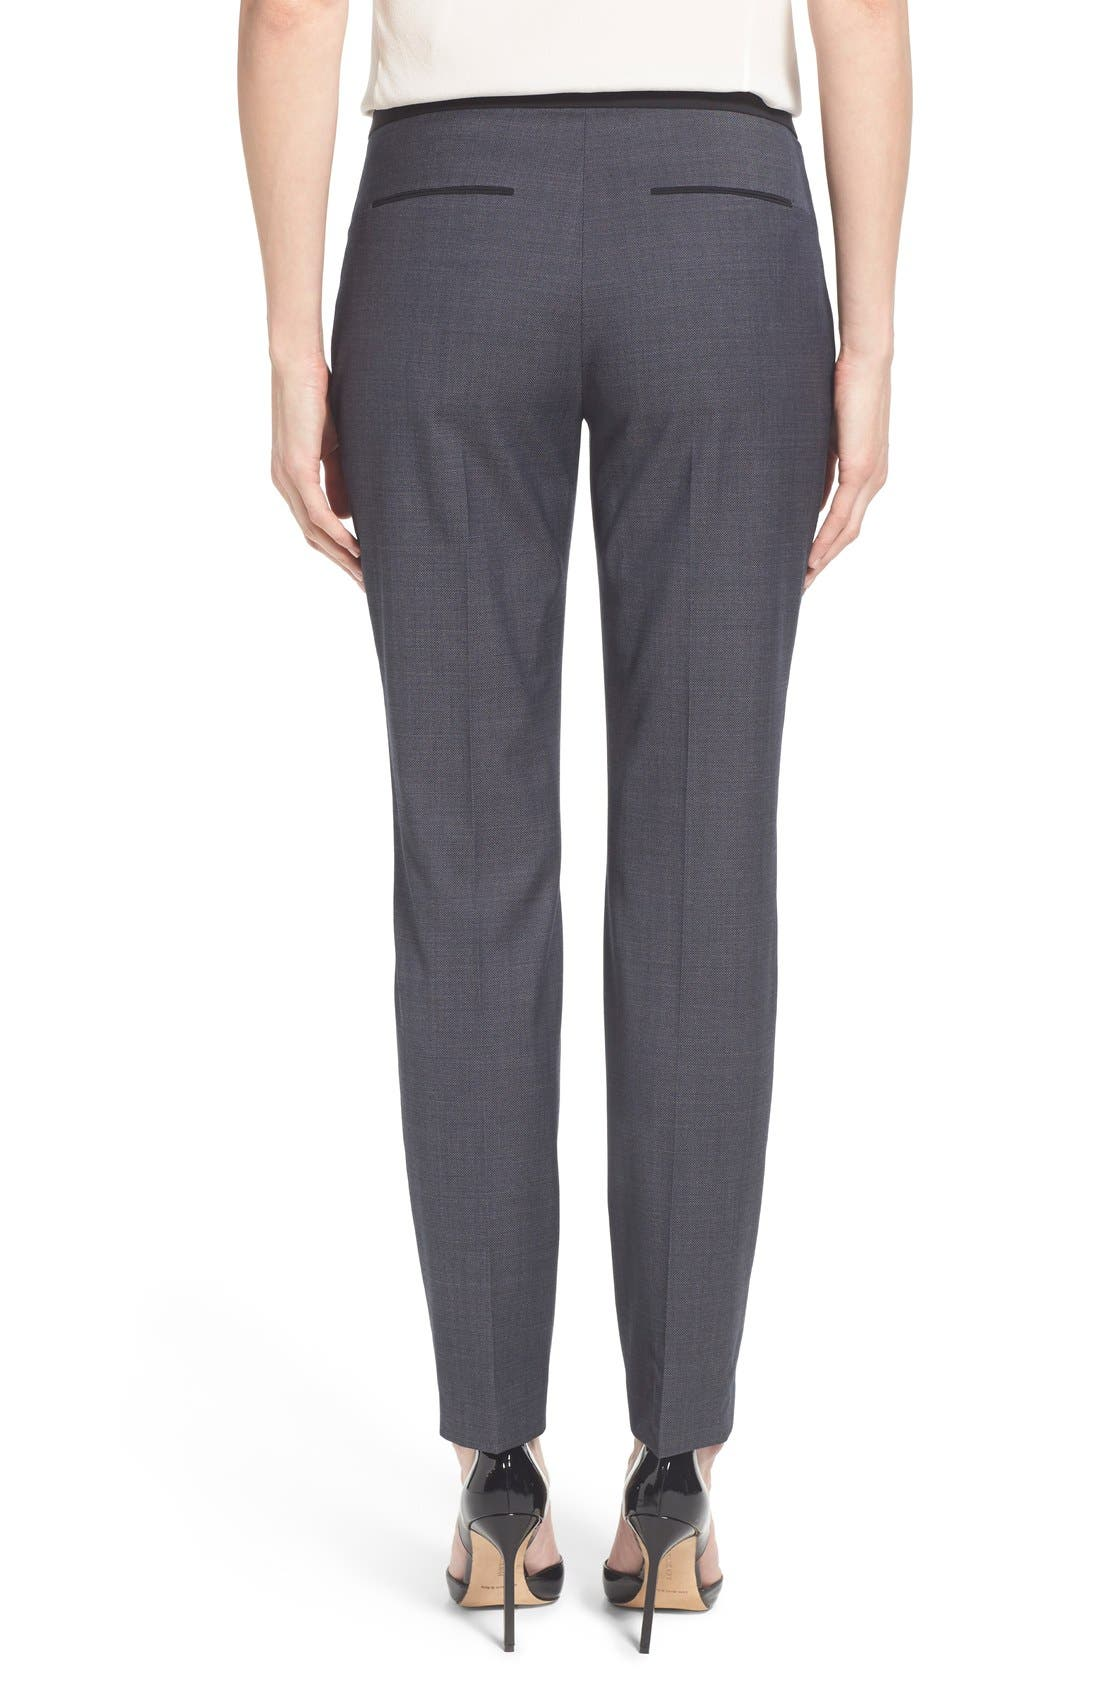 Alternate Image 3  - Elie Tahari 'Jillian' Slim Fit Stretch Woven Pants